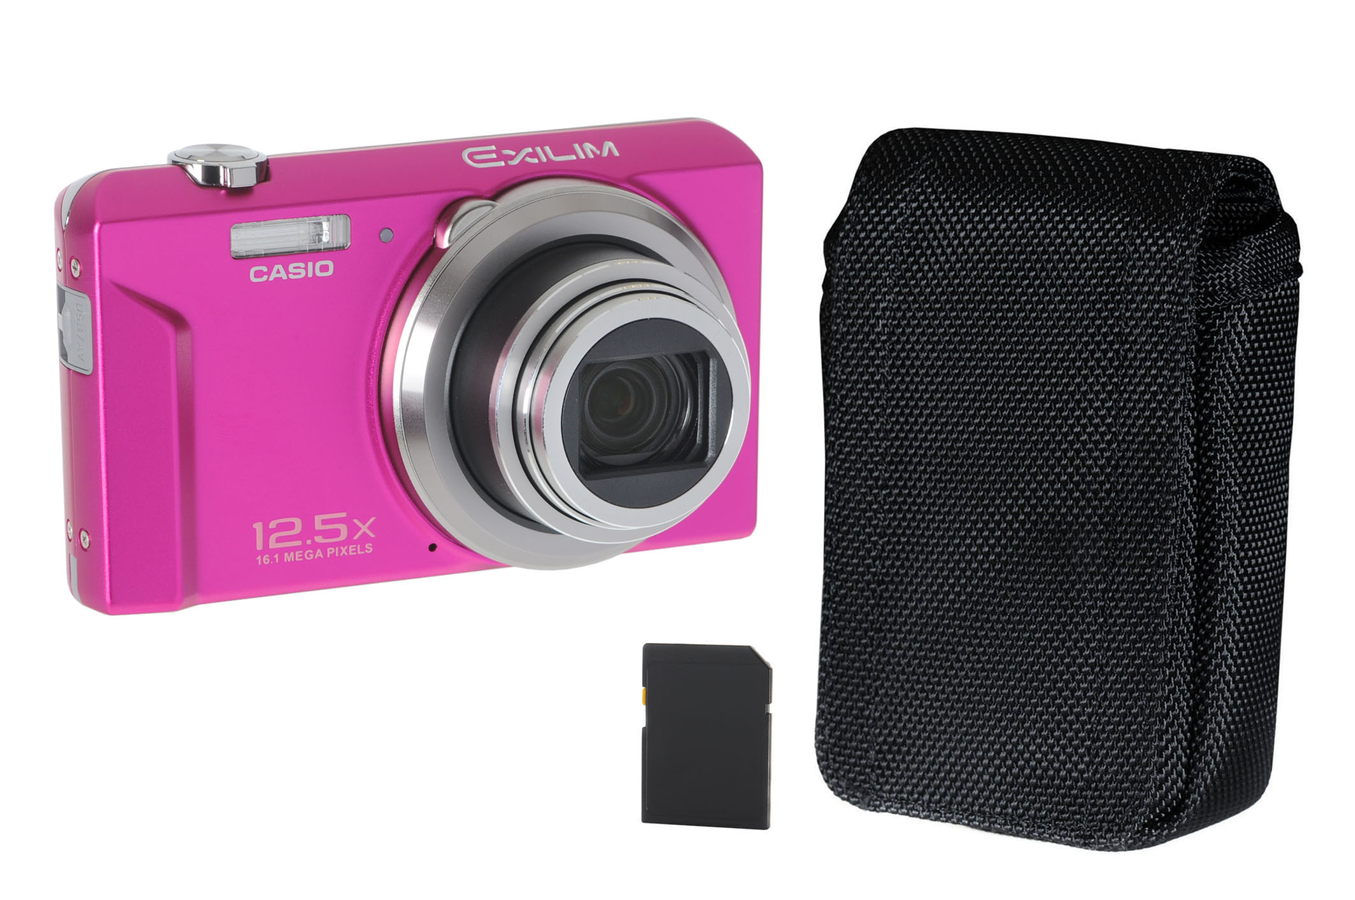 Appareil photo compact casio ex zs150 rose housse 4go for Housse appareil photo compact